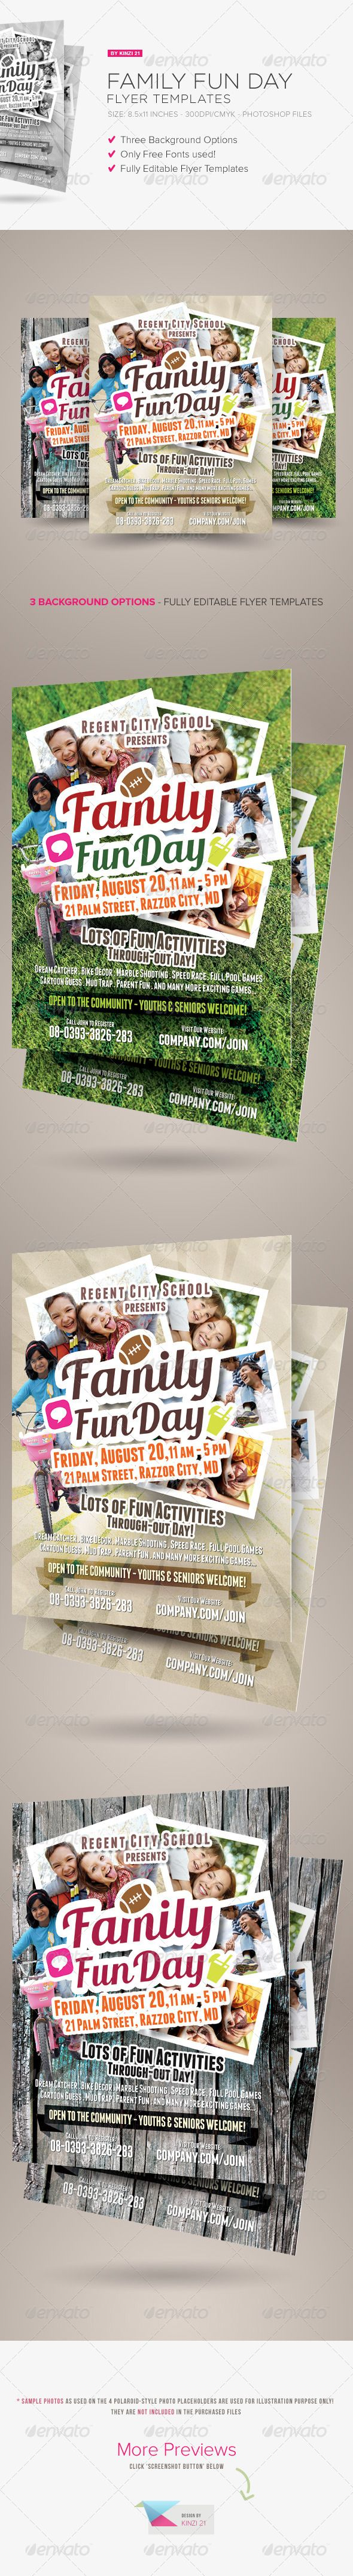 best images about flyers restaurant family fun family fun day flyers